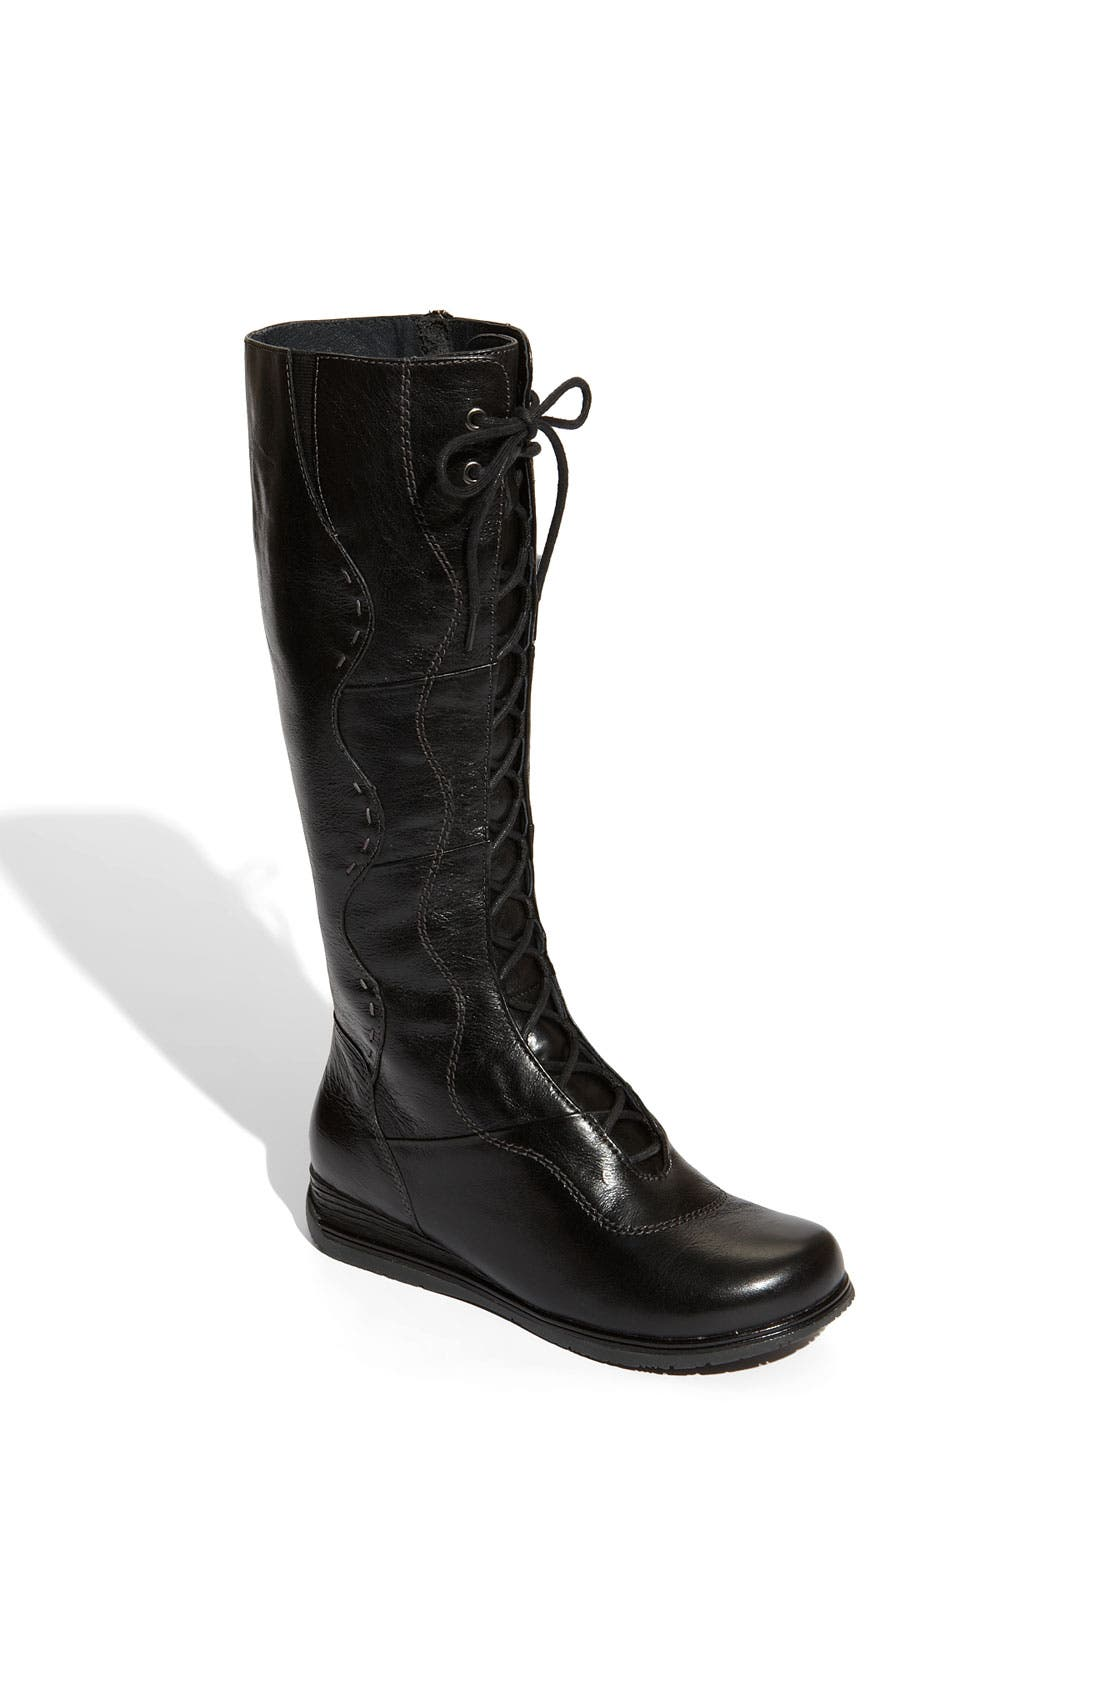 Alternate Image 1 Selected - Dansko 'Penelope' Boot